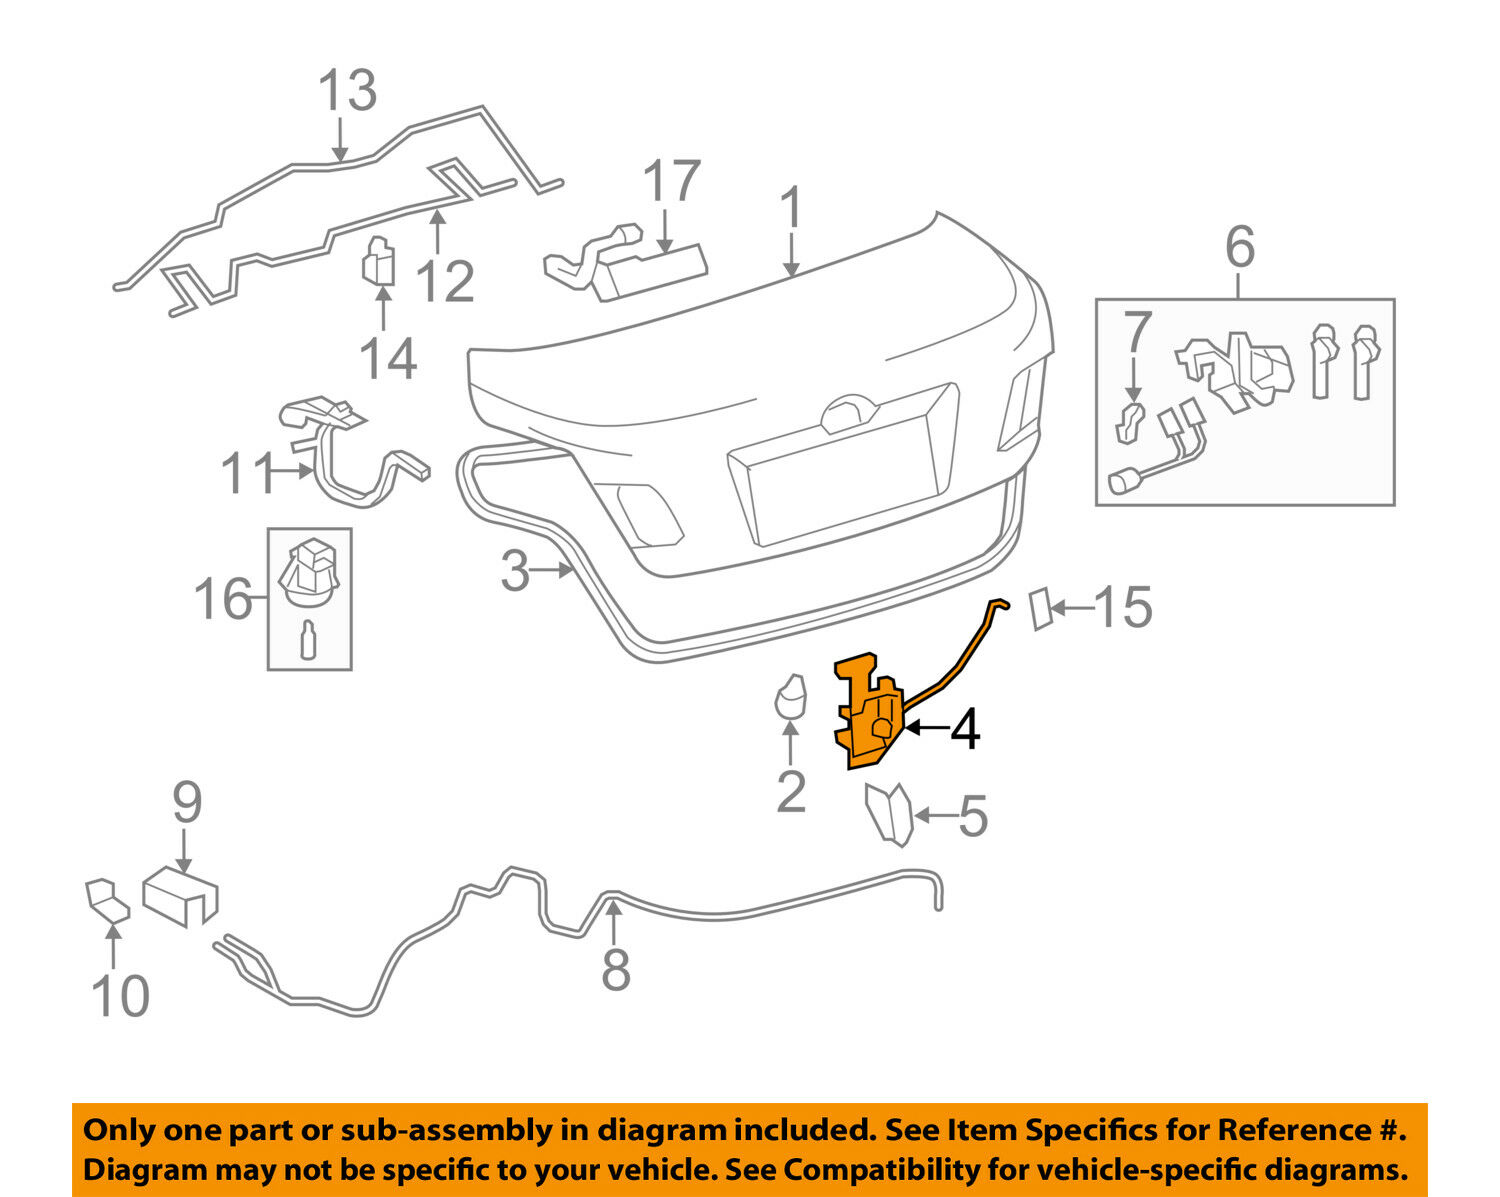 Toyota Oem 07 11 Camry Trunk Lock Or Actuator Latch Release Central Locking Wiring Diagram 1 Of 2only 0 Available